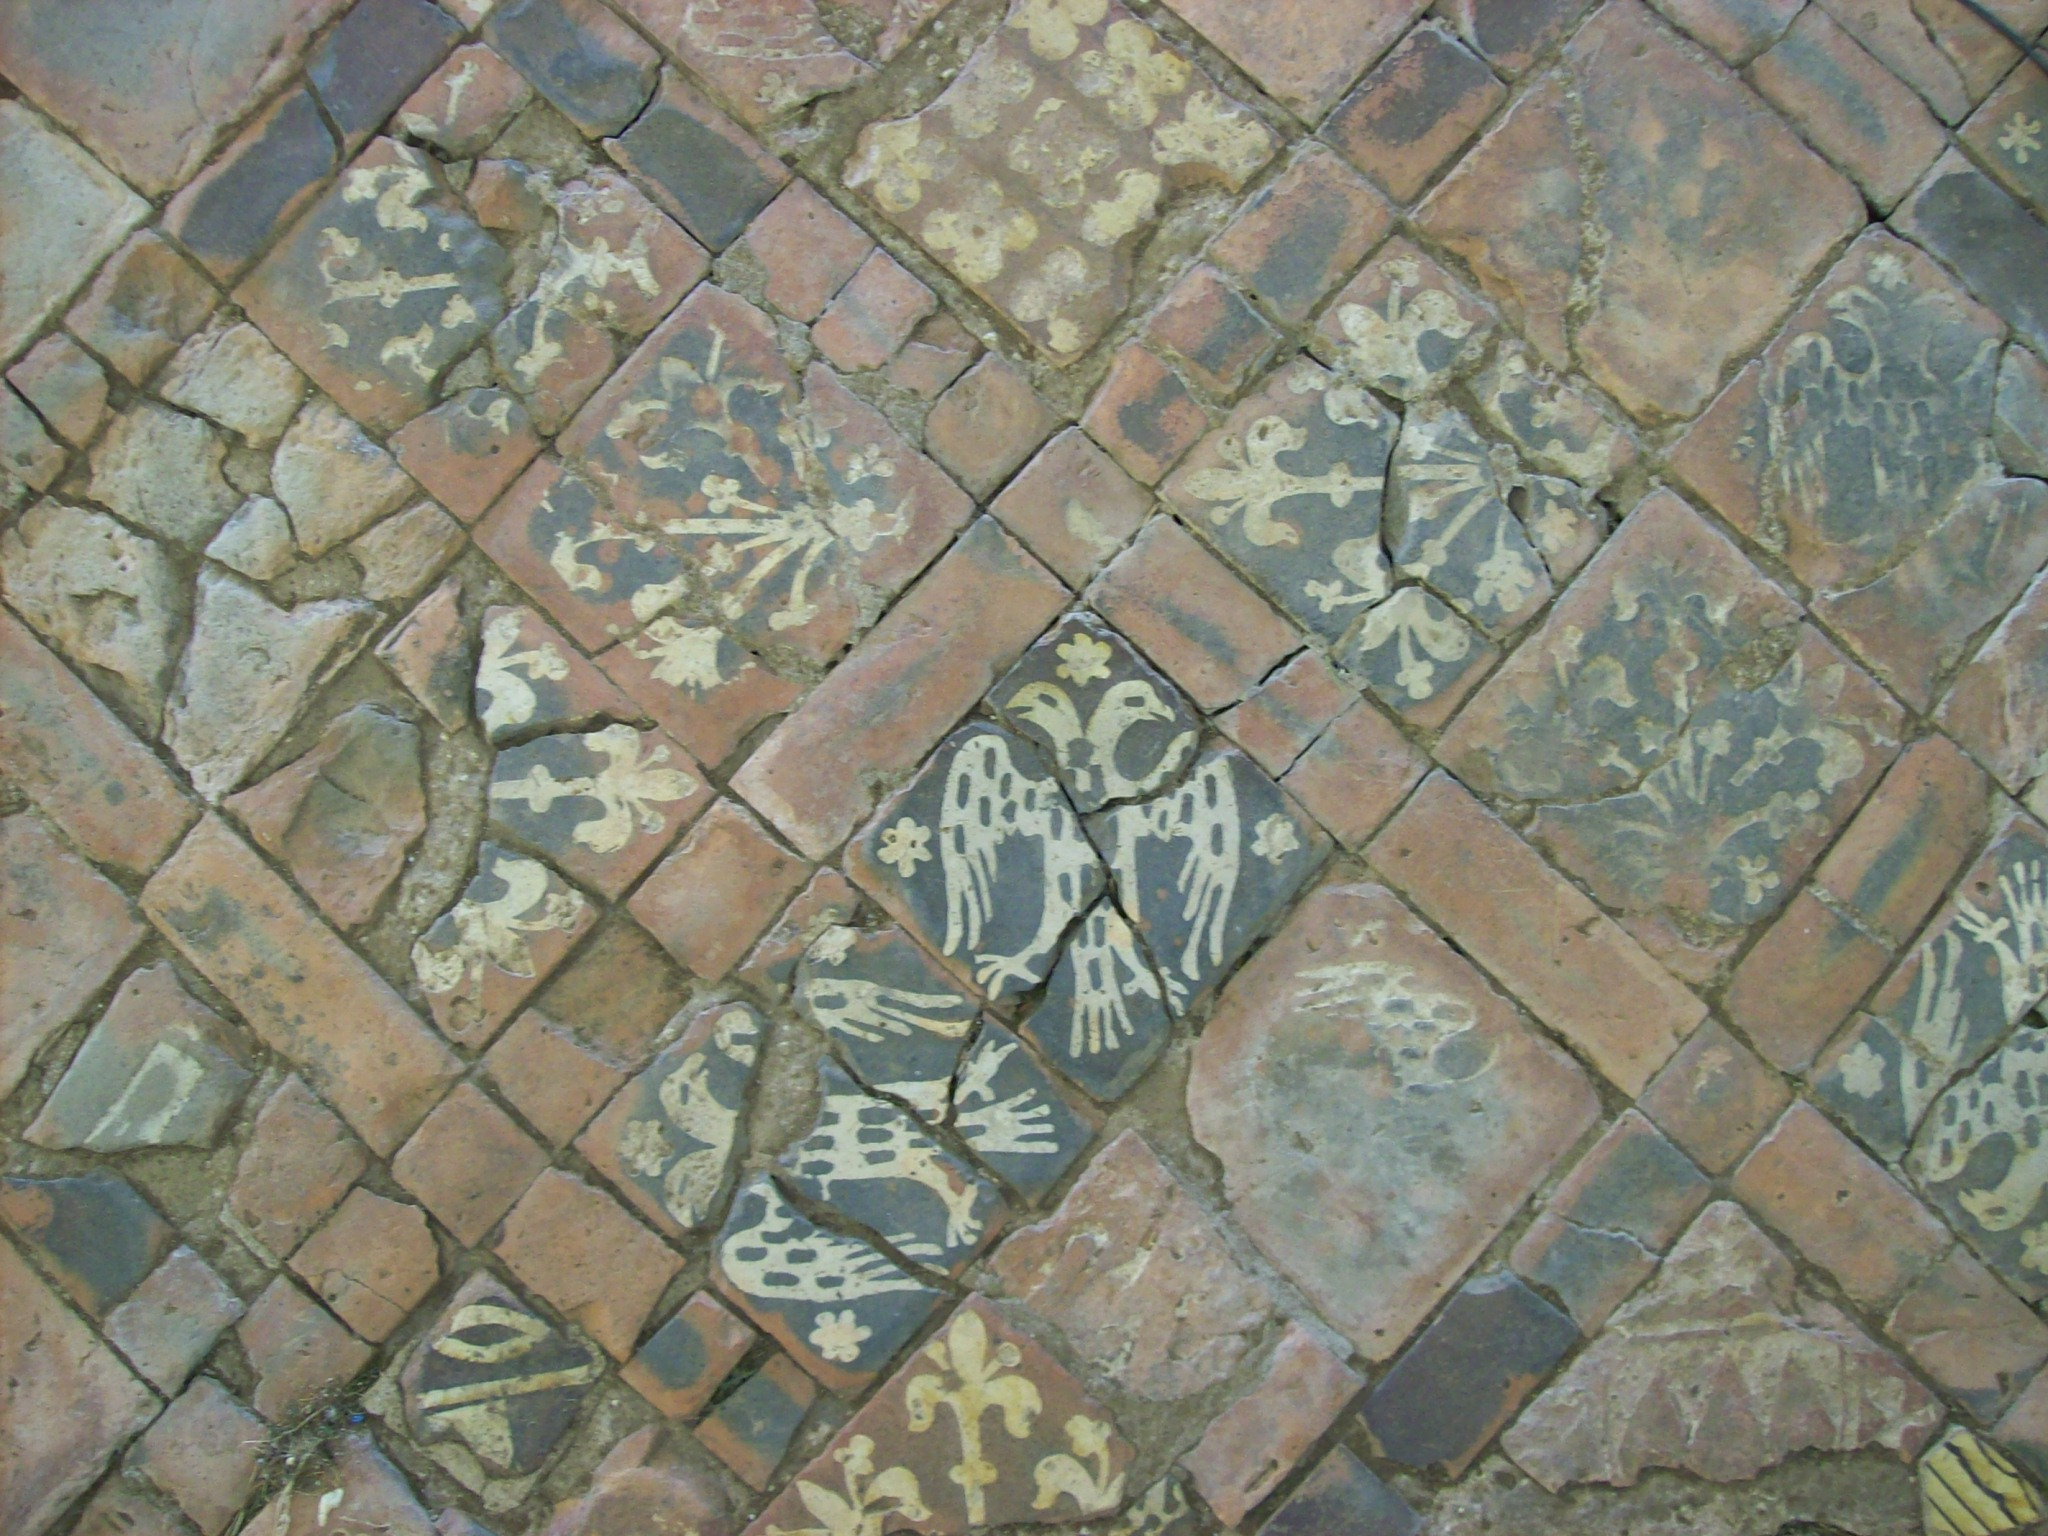 Filemedieval floor tiles cleeve abbeyg wikimedia commons filemedieval floor tiles cleeve abbeyg dailygadgetfo Images